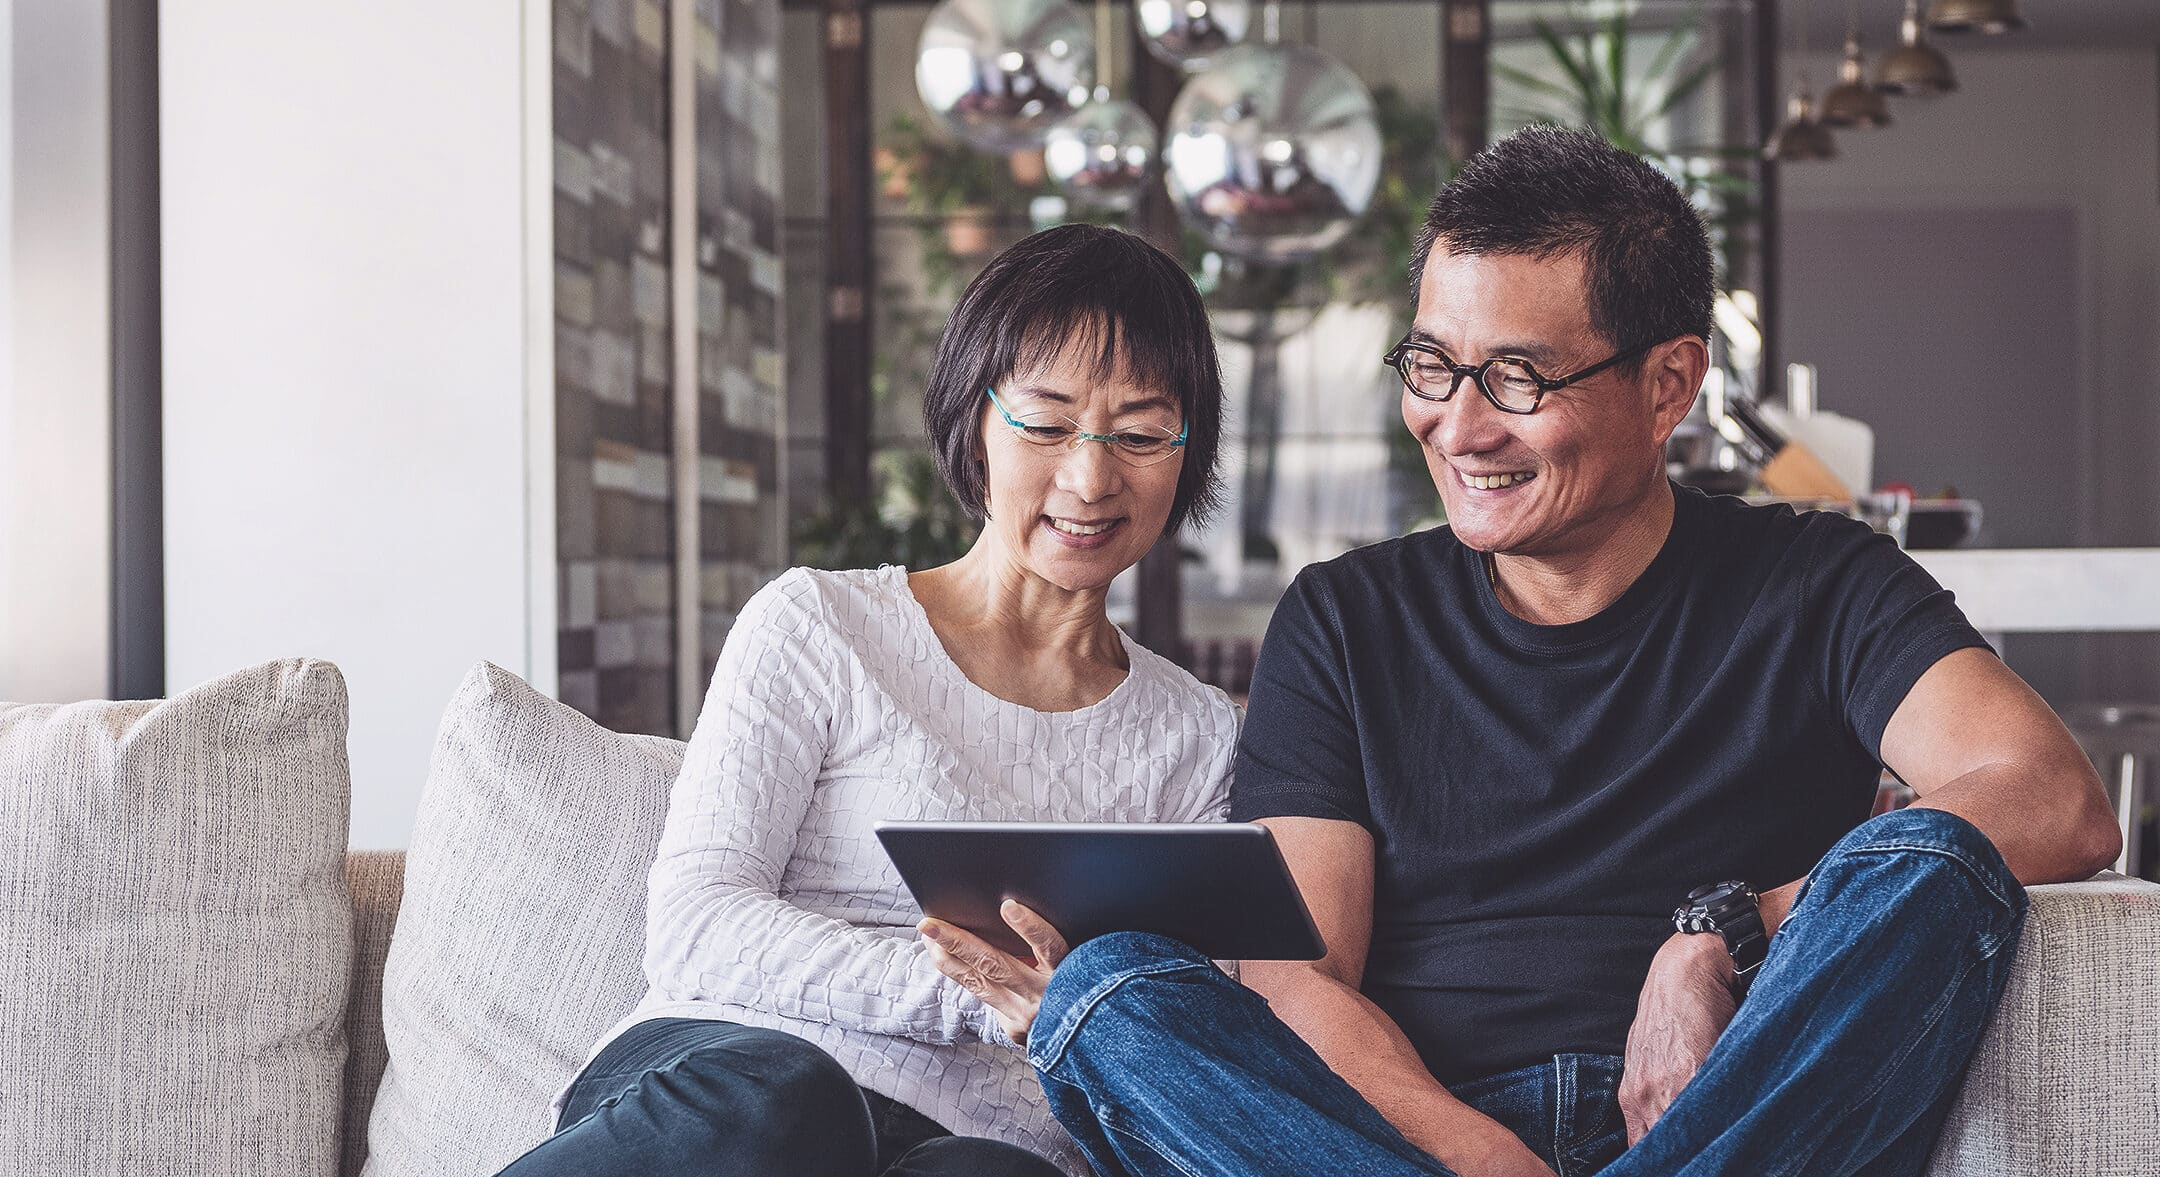 An older couple sitting on a couch browsing mortgage renewal options on a tablet.